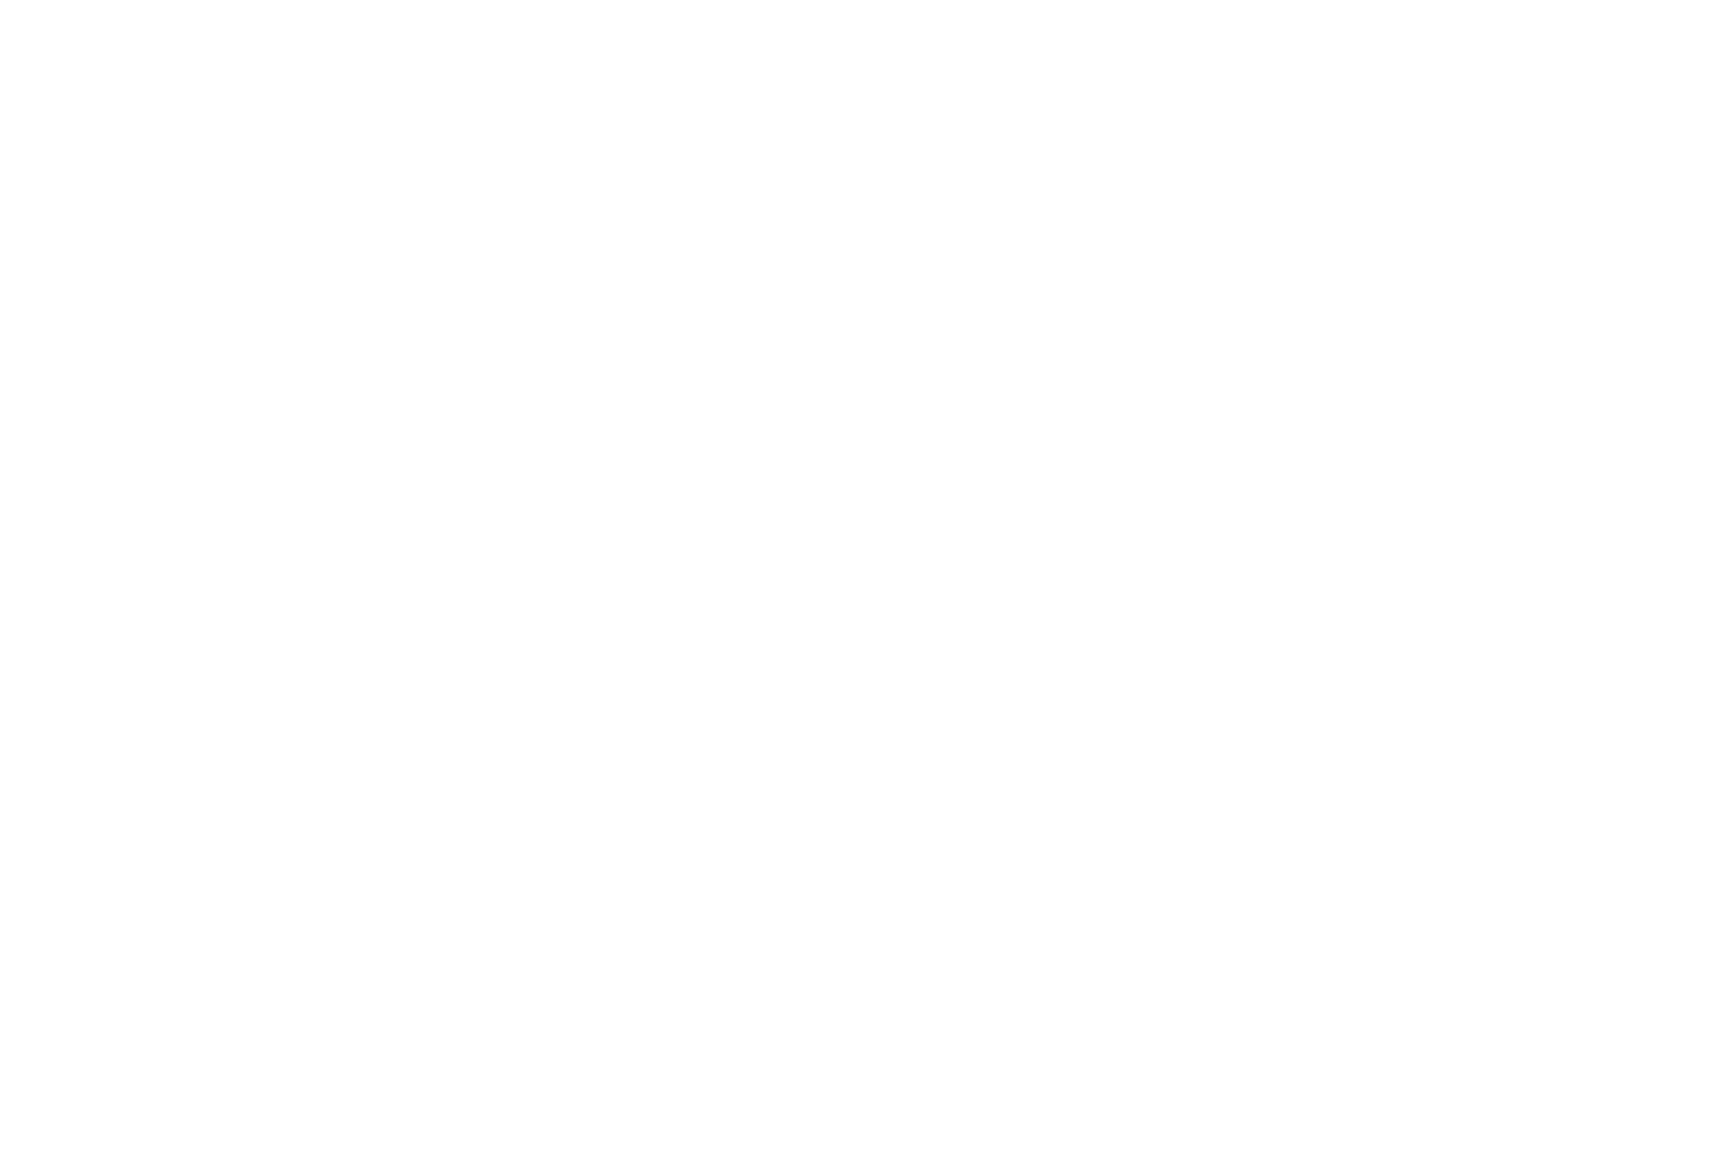 OFFICIAL SELECTION - Kingdomwood International Film Festival Screenplay Competition - 2019